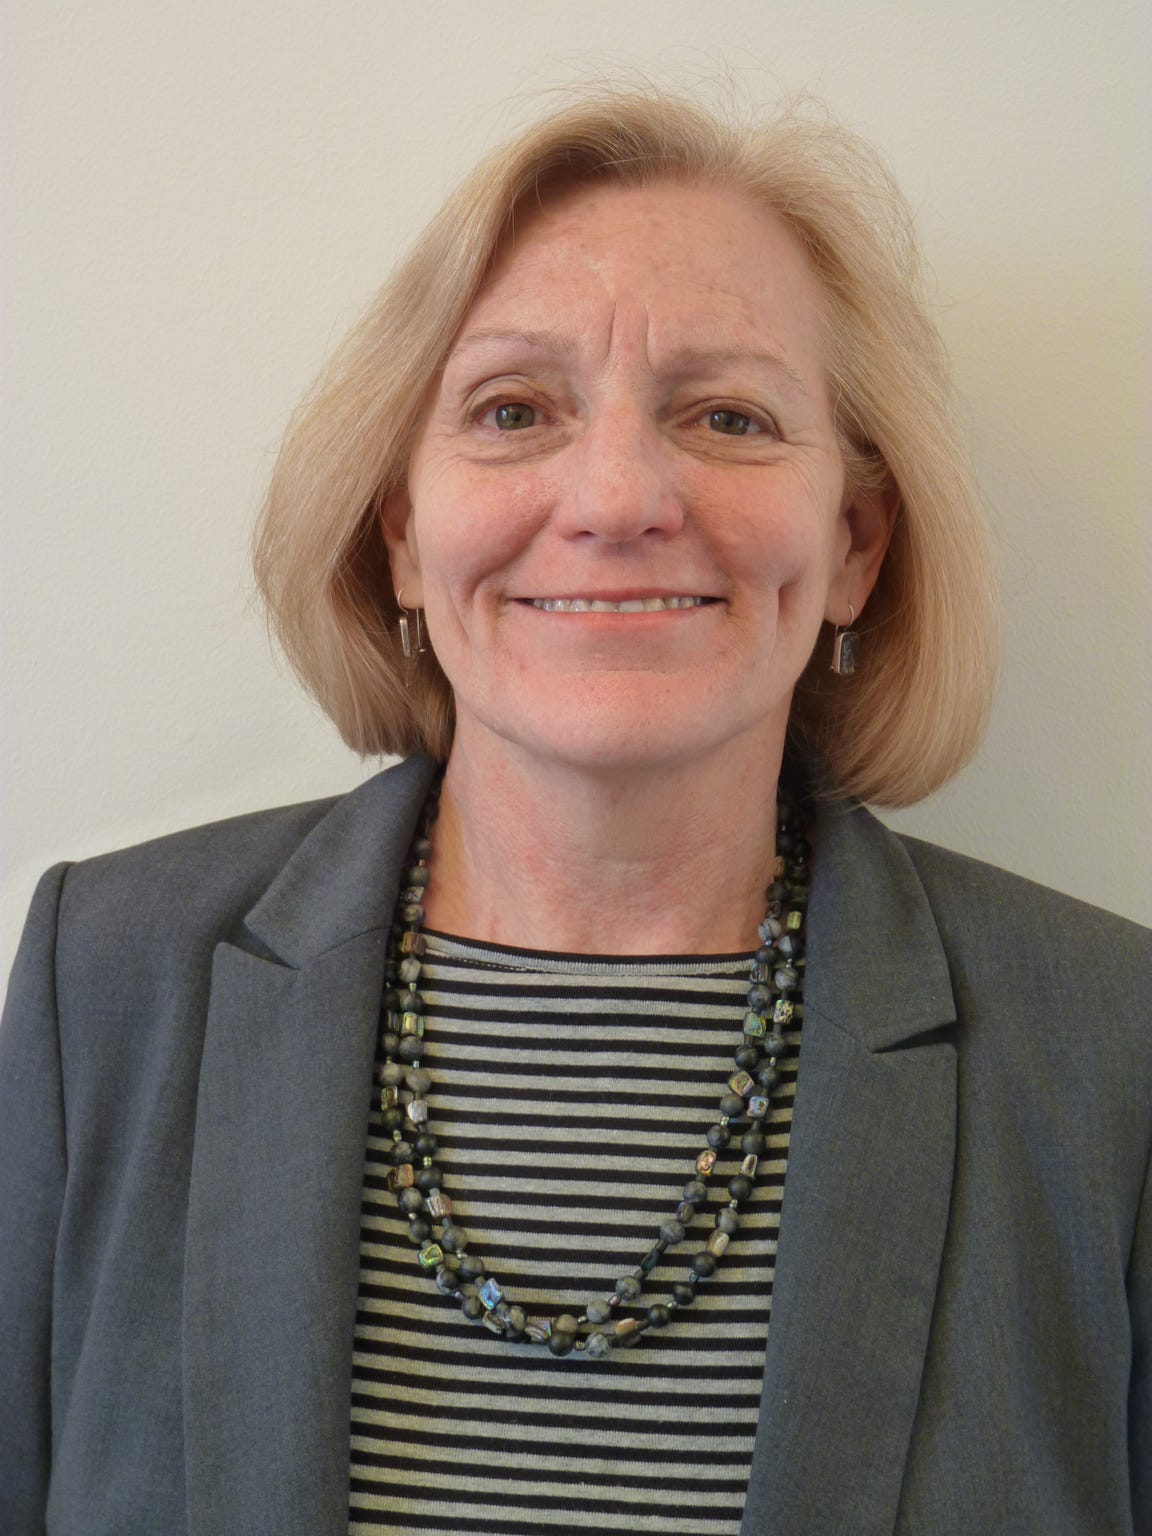 Kimberlee Wright, executive director of Midwest Environmental